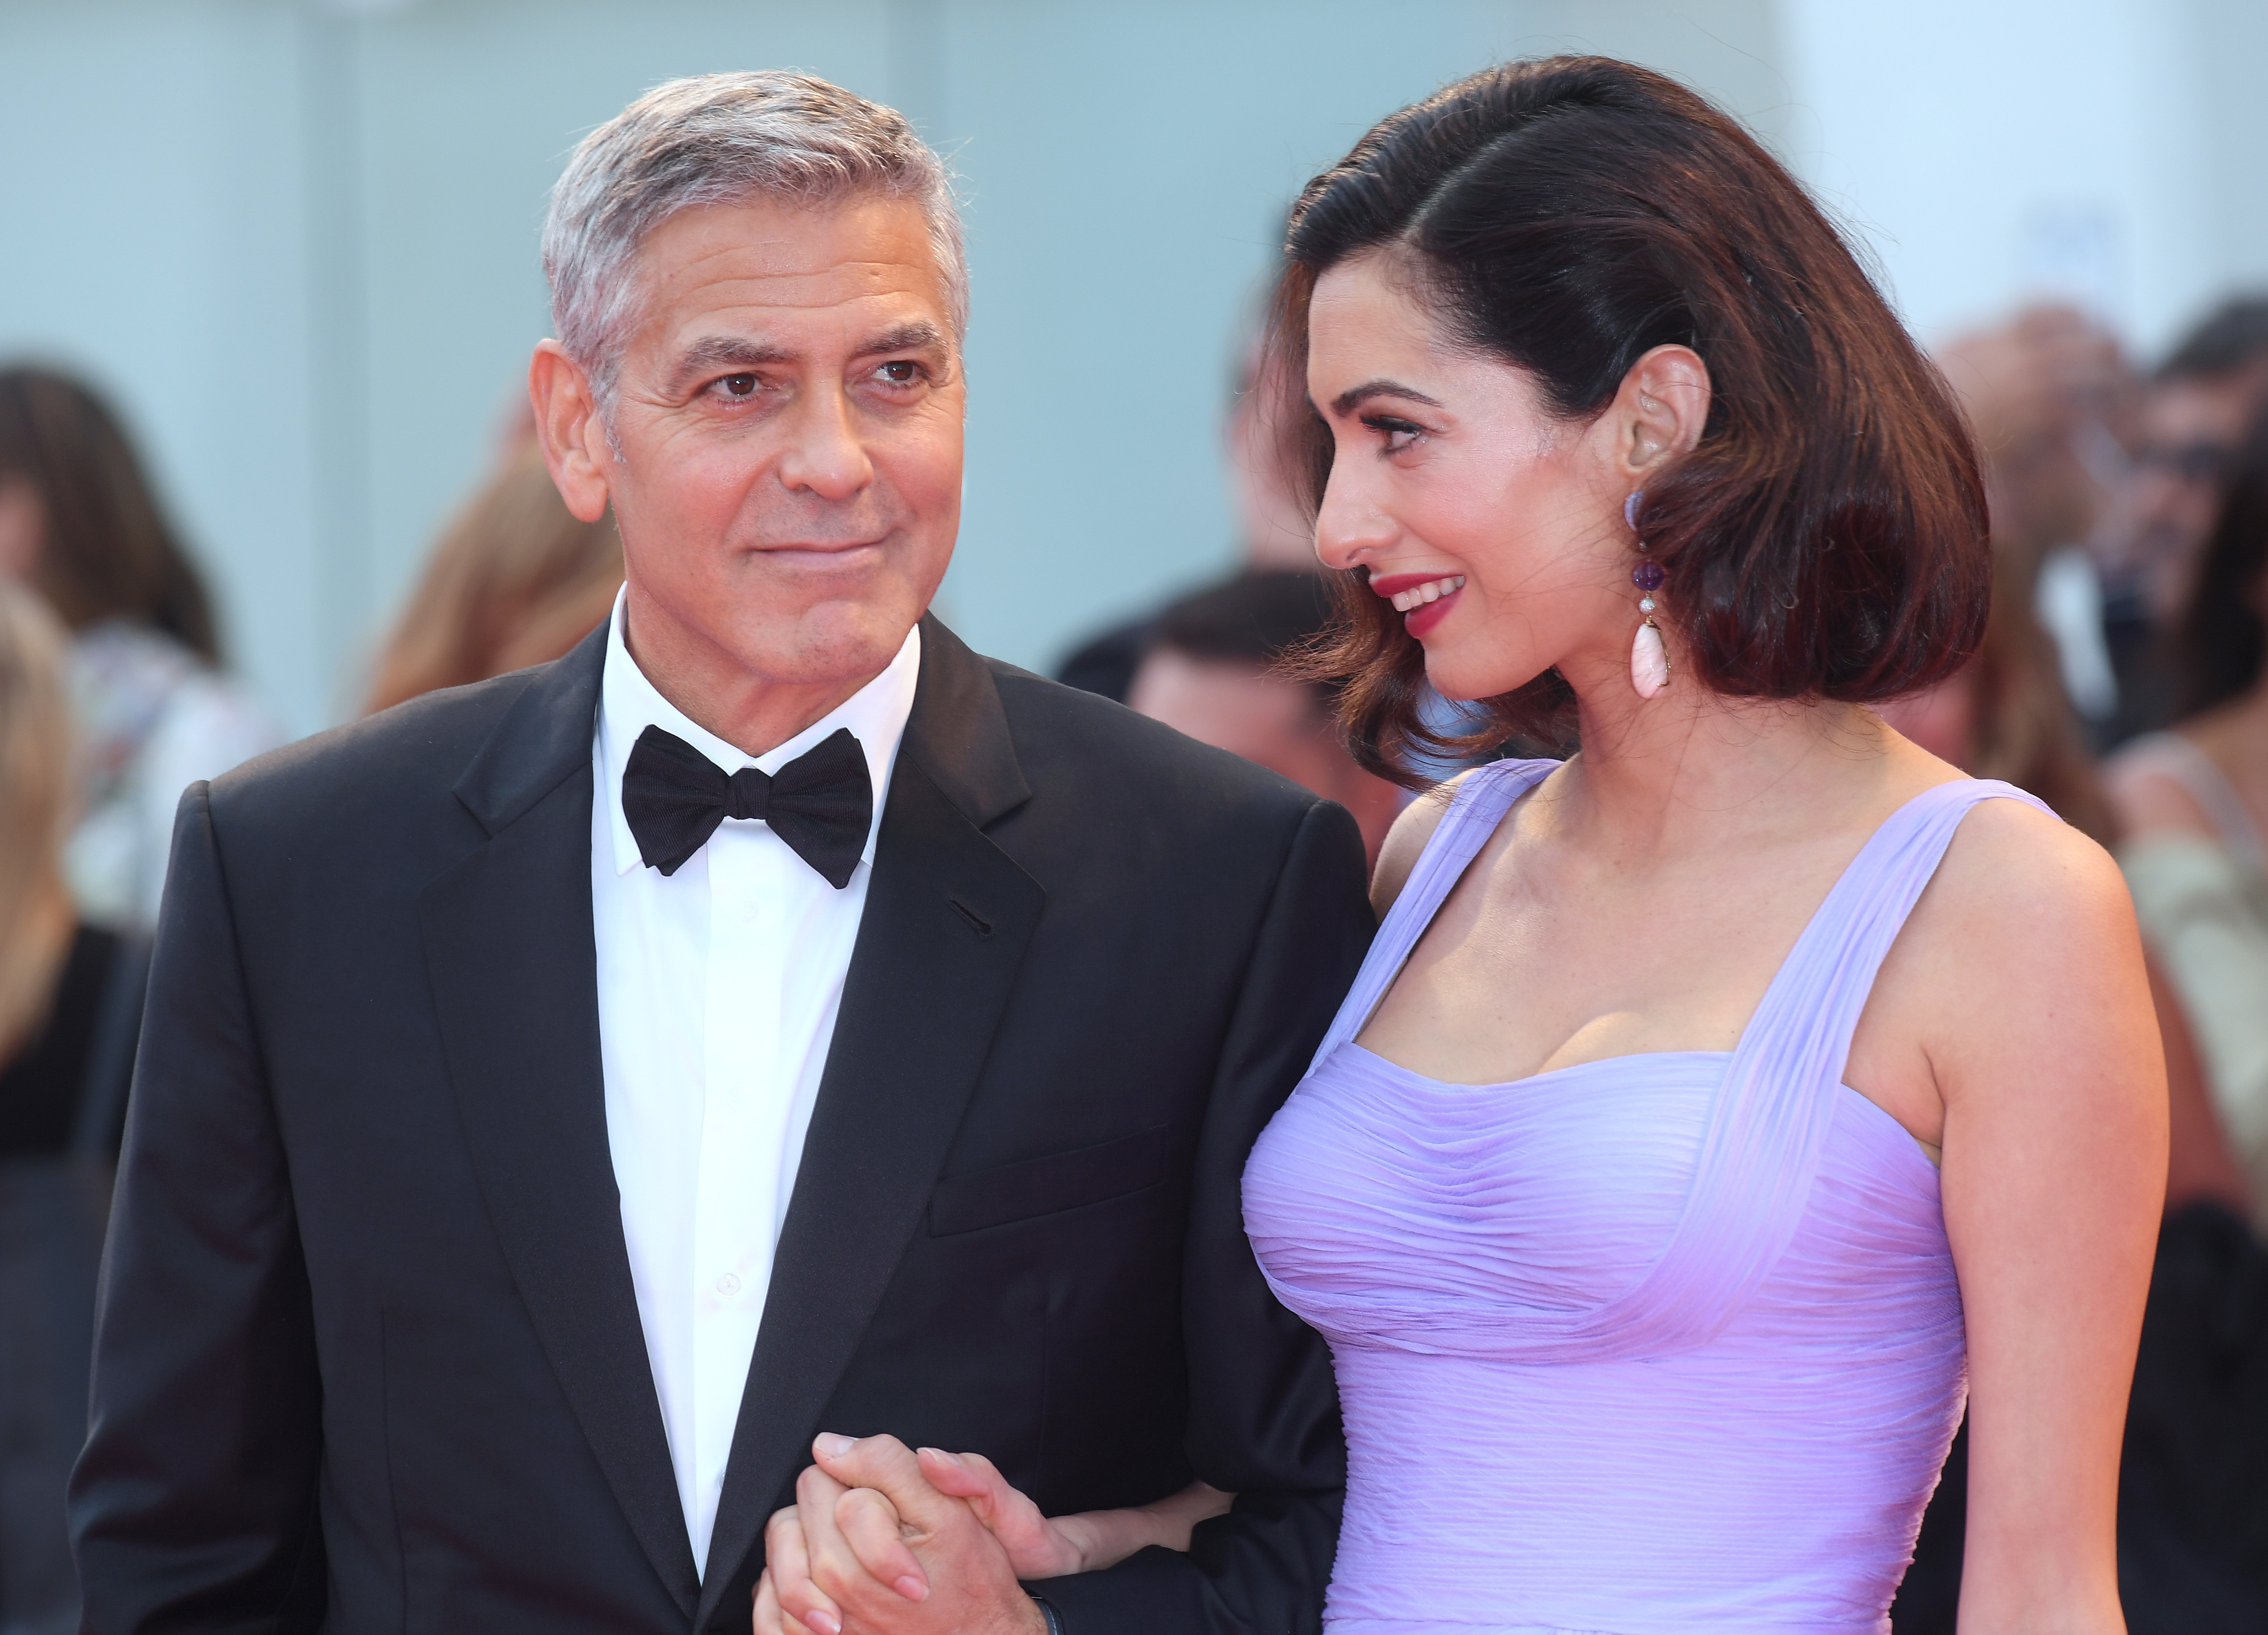 """Amal Clooney and George Clooney attend the """"Suburbicon"""" premiere at the 74th Venice International Film Festival in Venice, Italy on Sept. 2, 2017."""